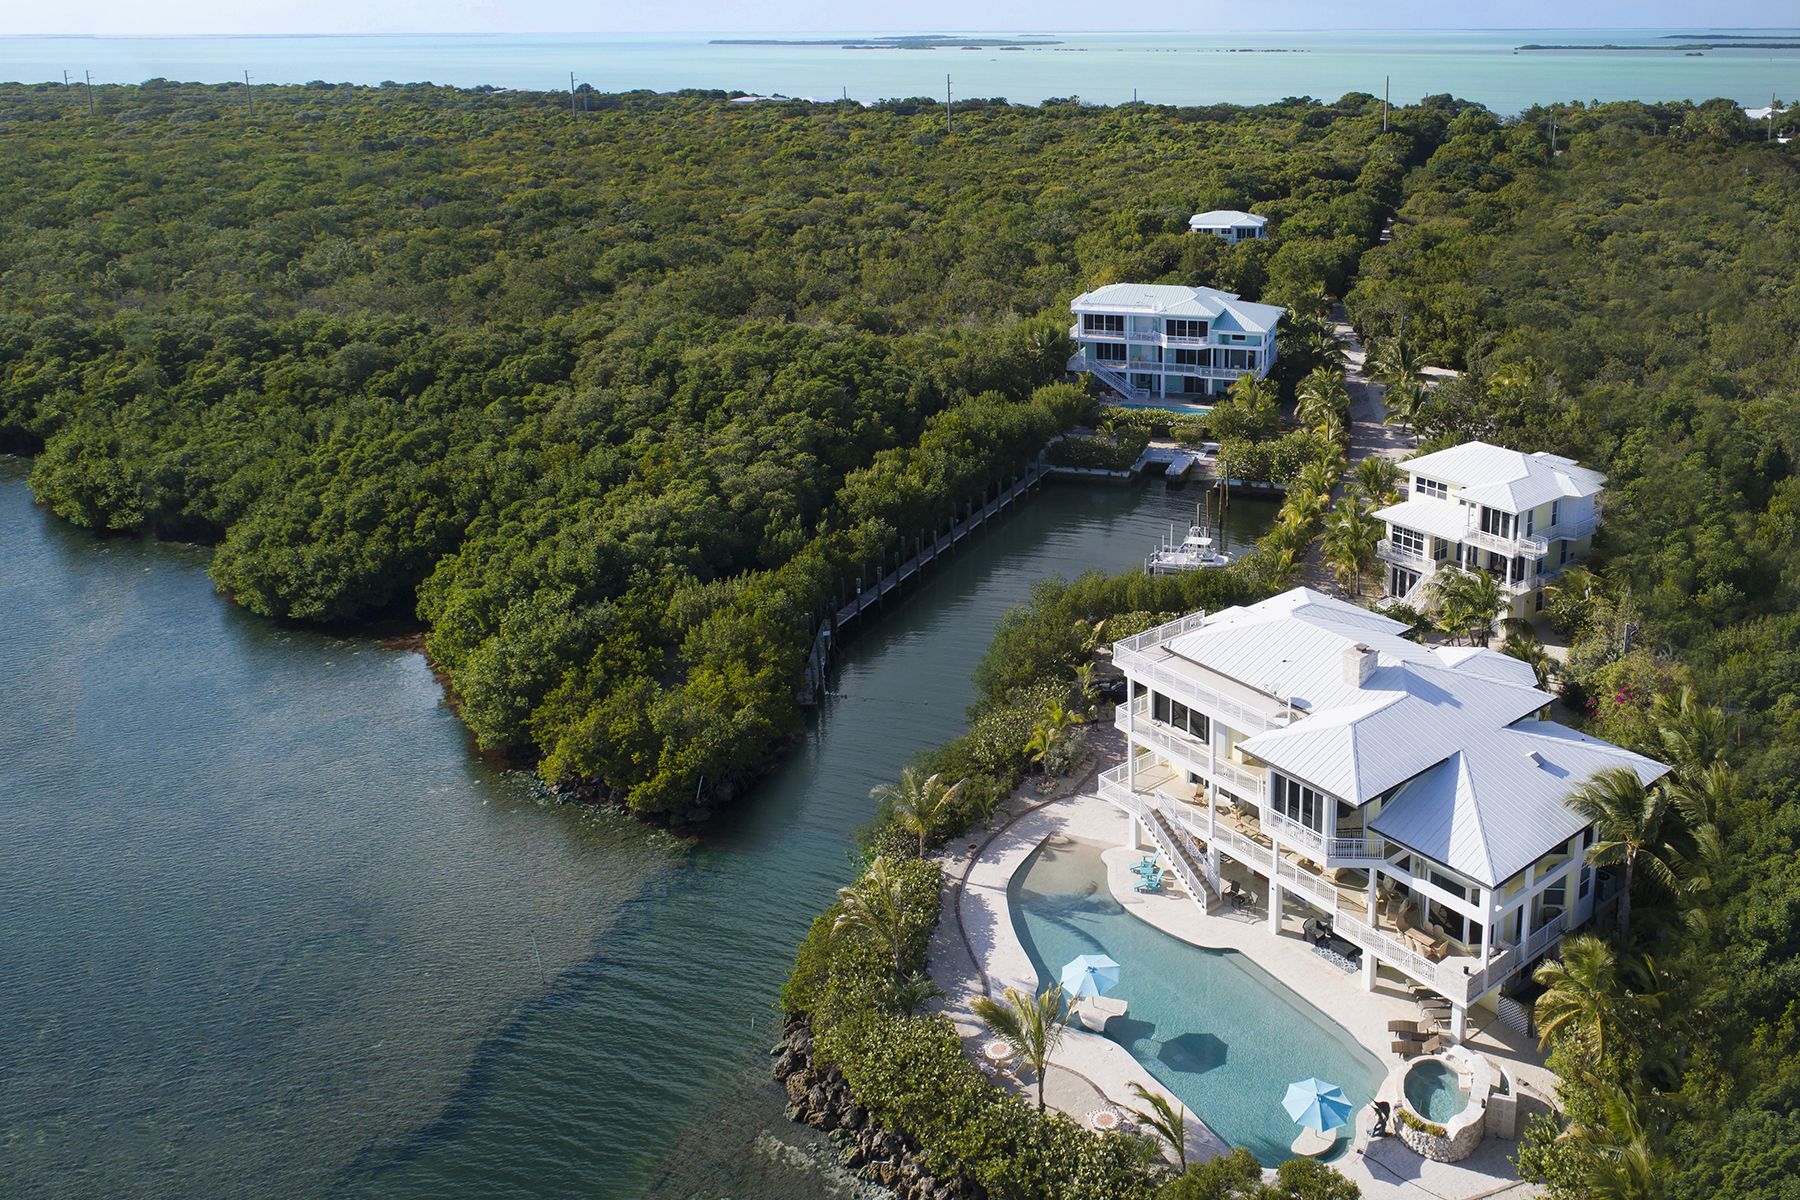 Casa Unifamiliar por un Venta en Unique Oceanfront Estate 97251 Overseas Highway Key Largo, Florida, 33037 Estados Unidos